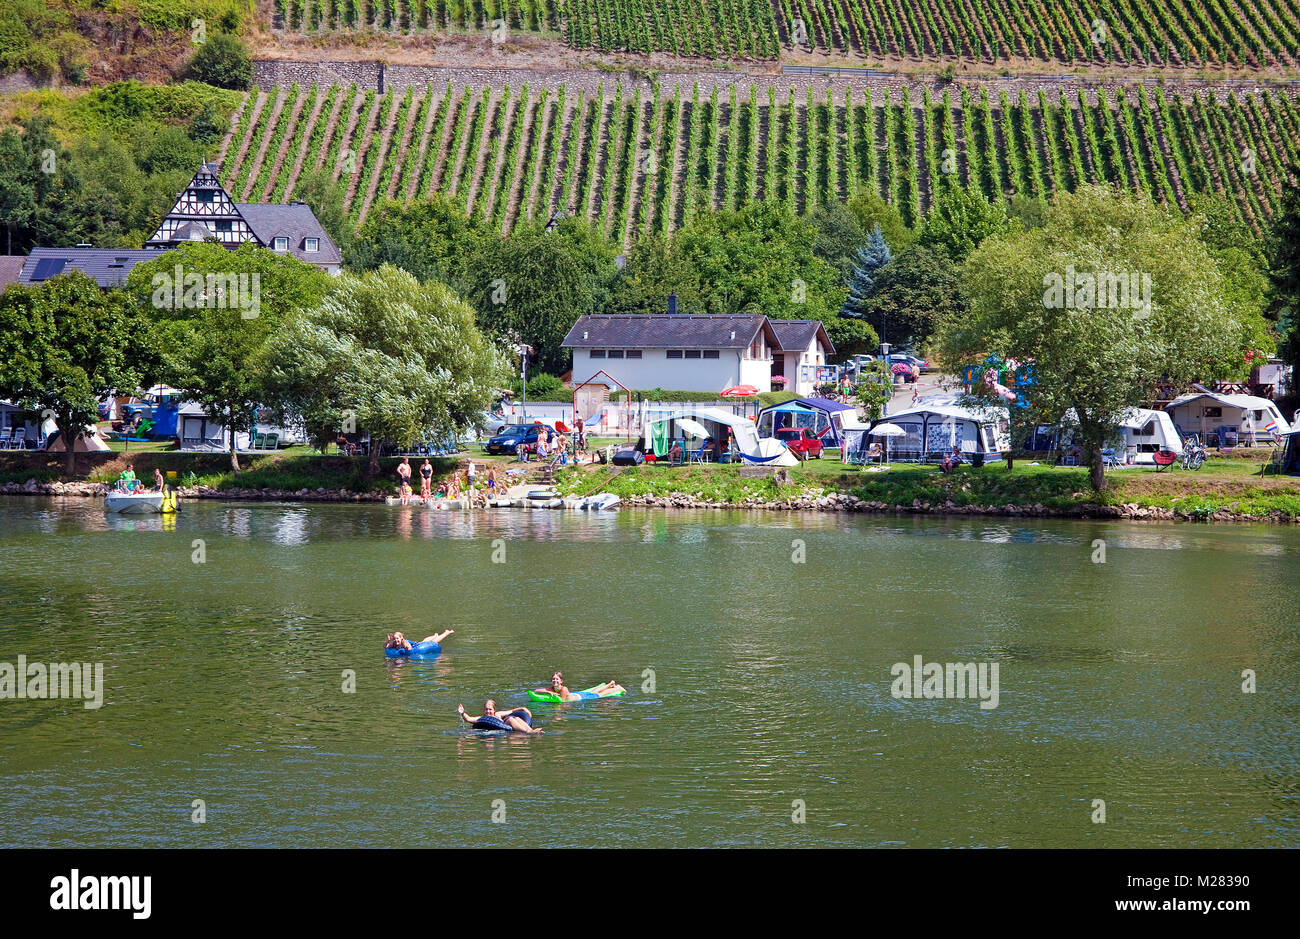 Camping ground at riverside, bathing in Moseller river, Wolf, Traben-Trarbach, Moselle river, Rhineland-Palatinate, Germany, Europe Stock Photo